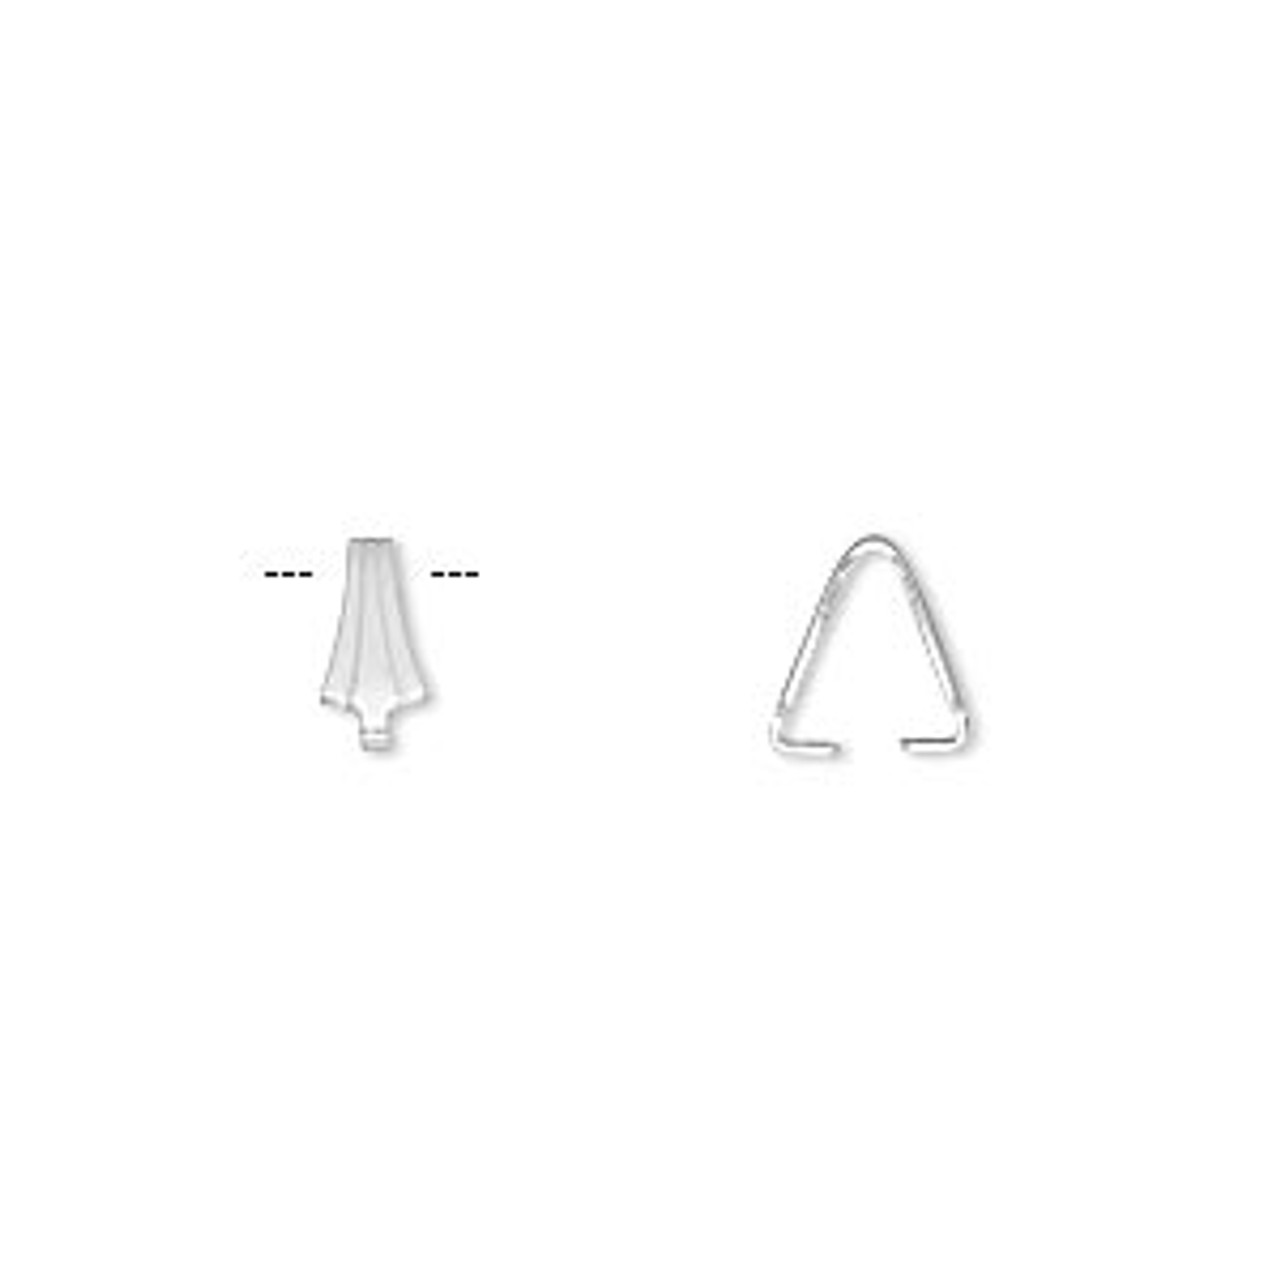 8x3.5mm Silver Plated Pinch Bail (12 Pack)